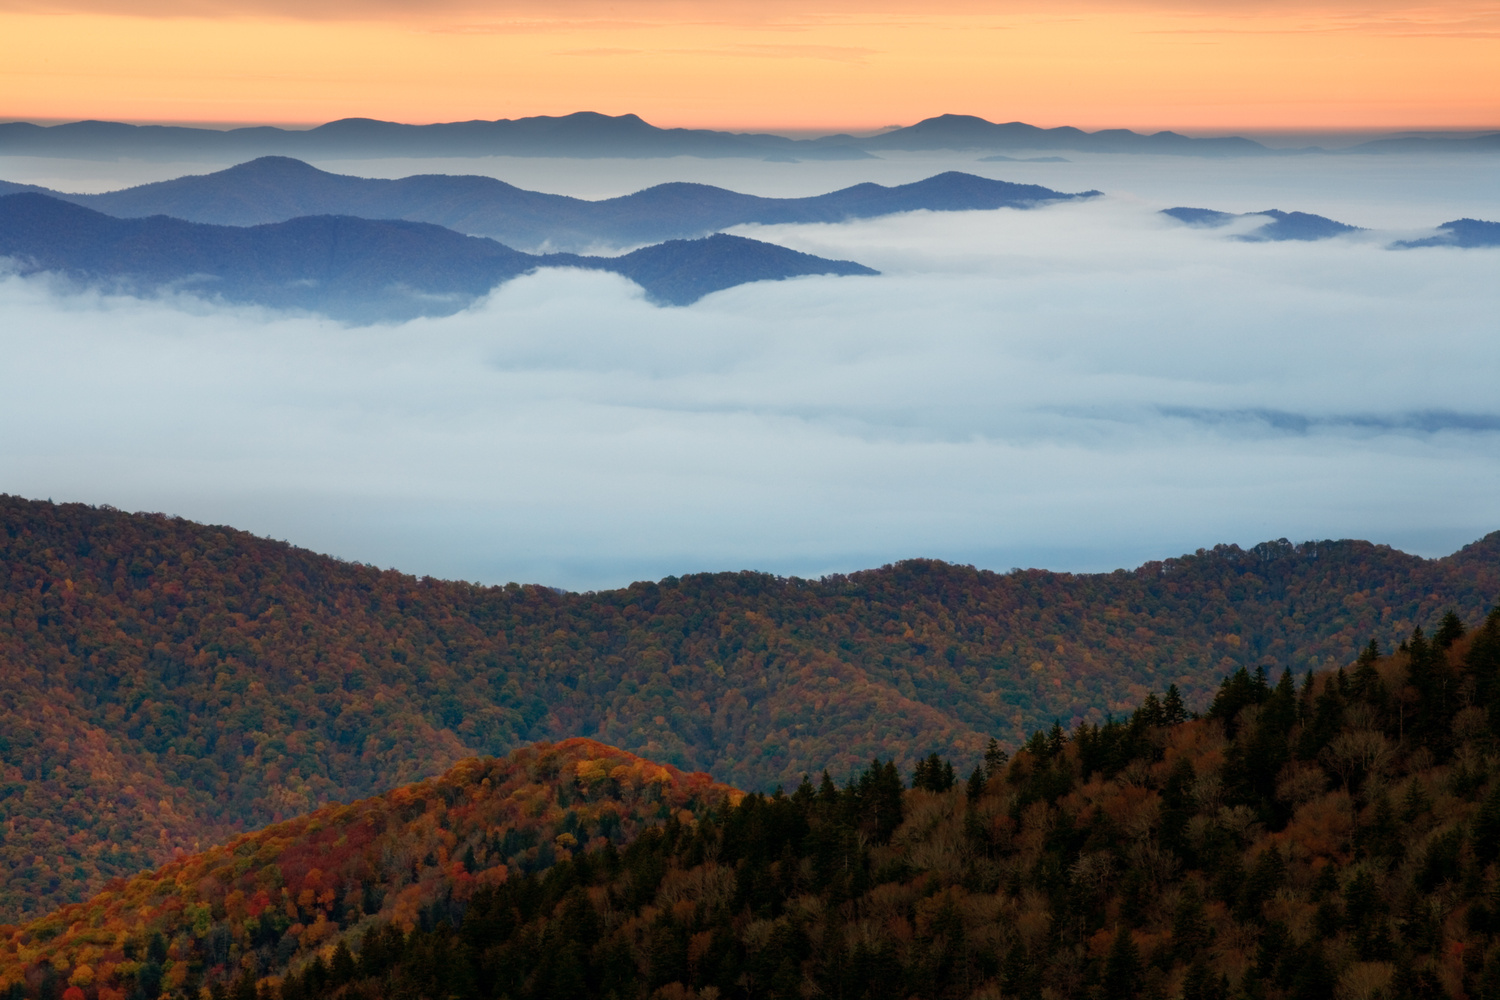 Fall in the Smokies by Thomas Even